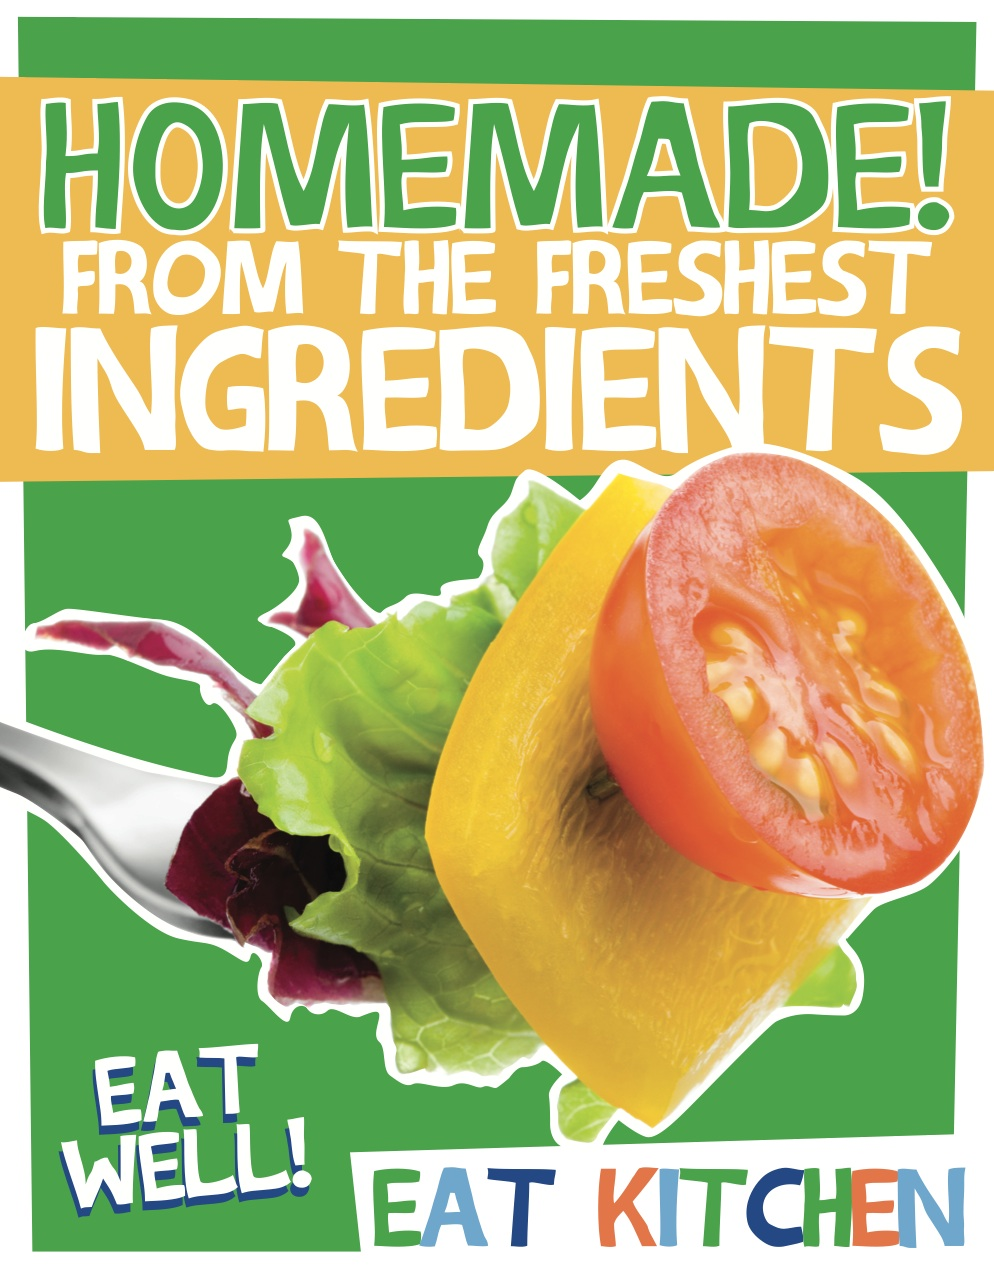 Eat Kitchen_Homemade Poster